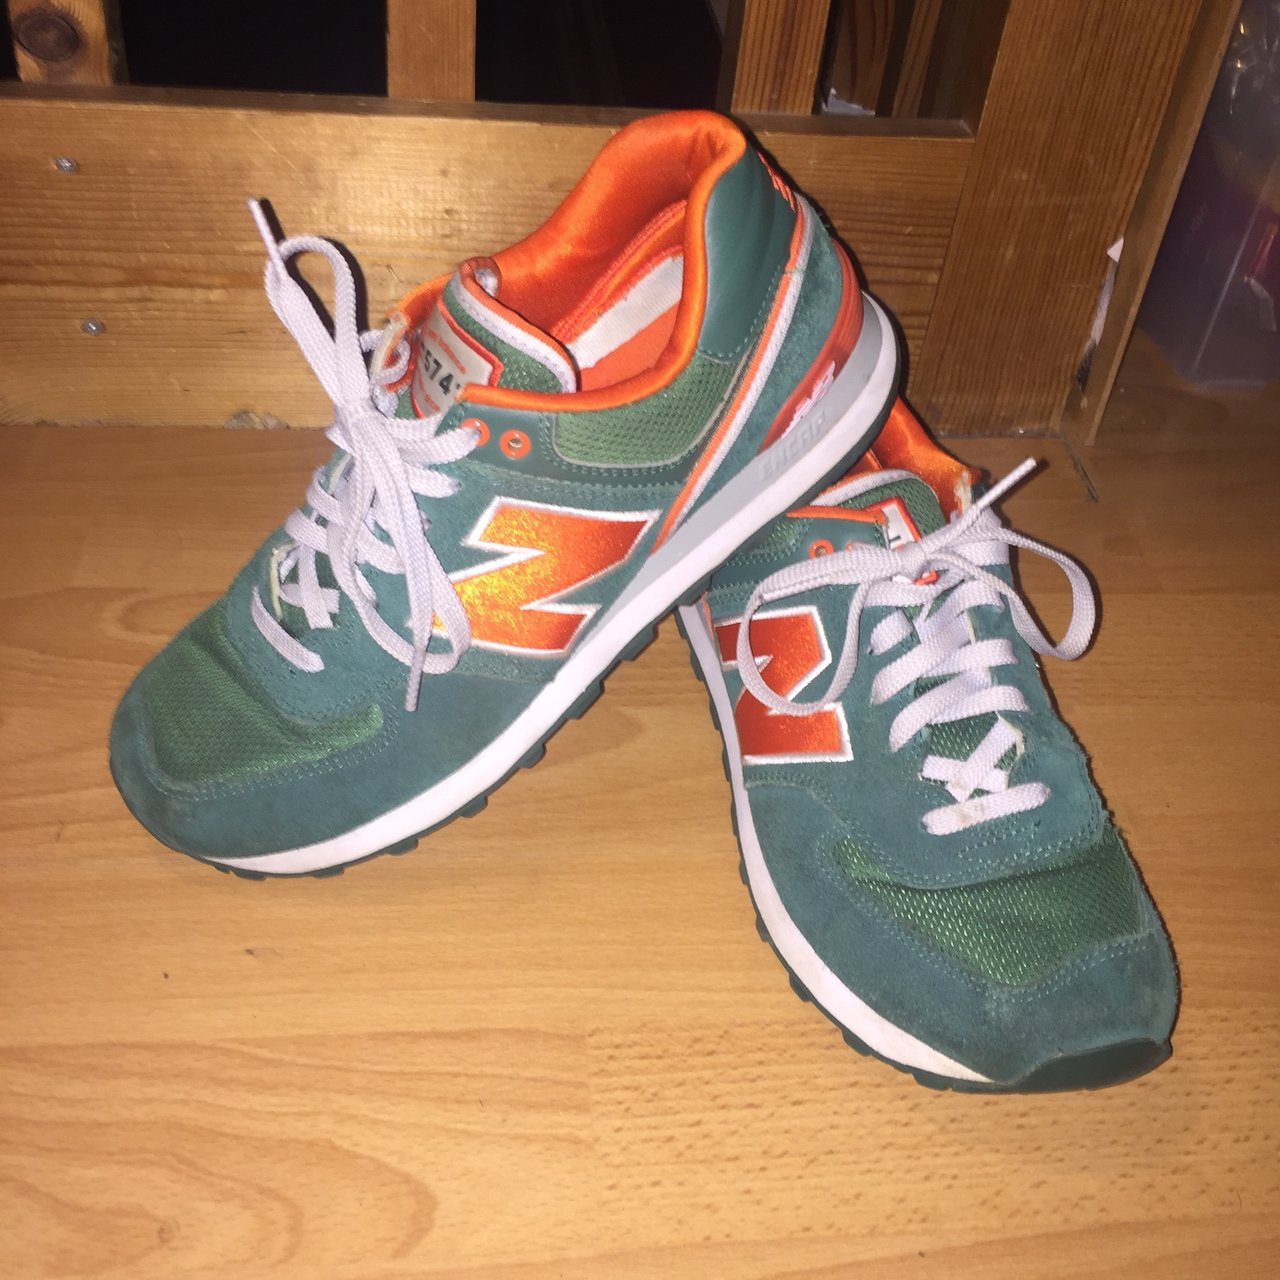 Lifestyle Are And These Some Balance Depop Running ShoeA 574 New y0wOvmNn8